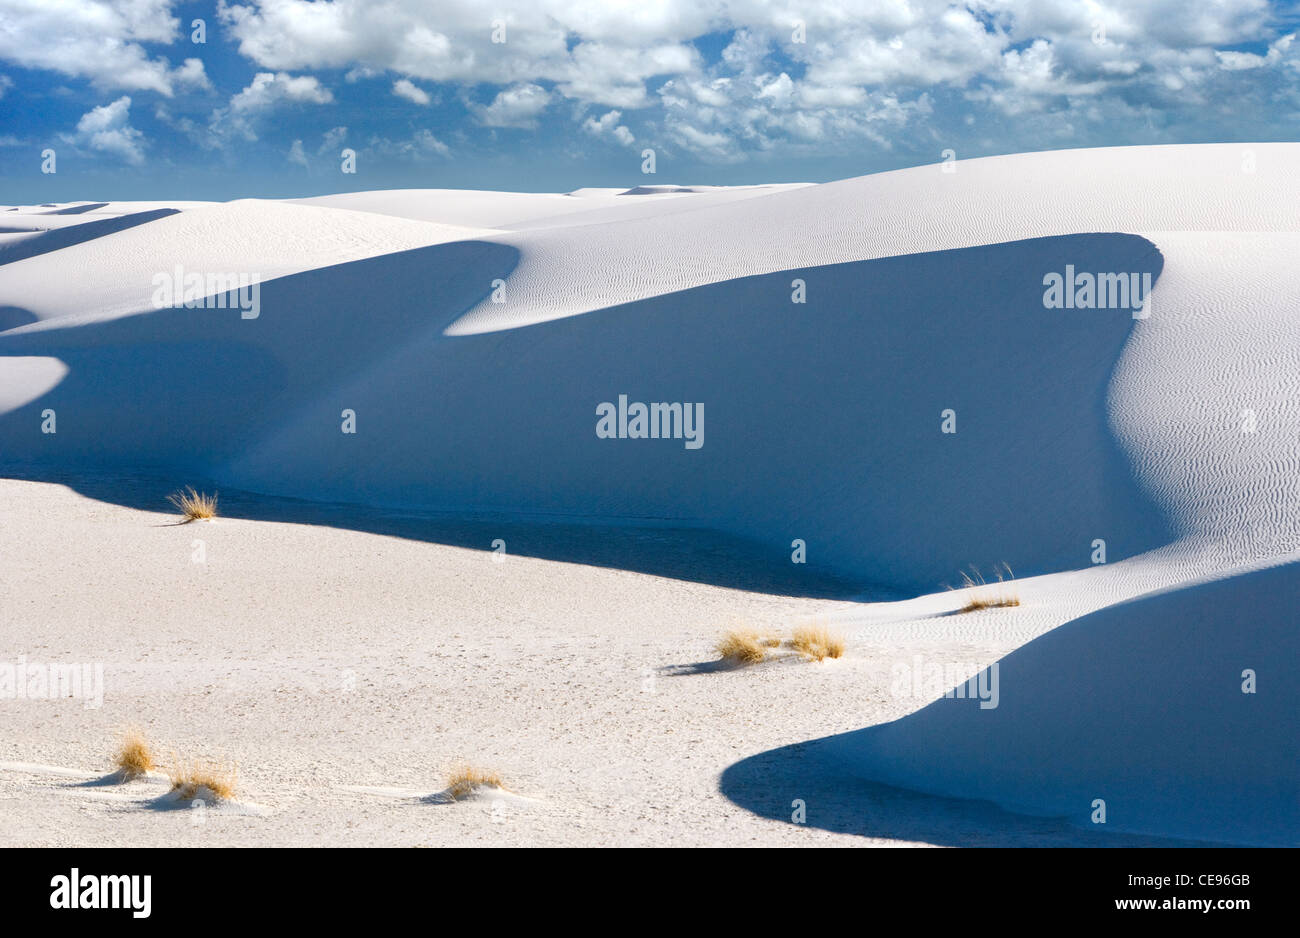 A large white sand dune at White Sands National Monument, New Mexico. - Stock Image